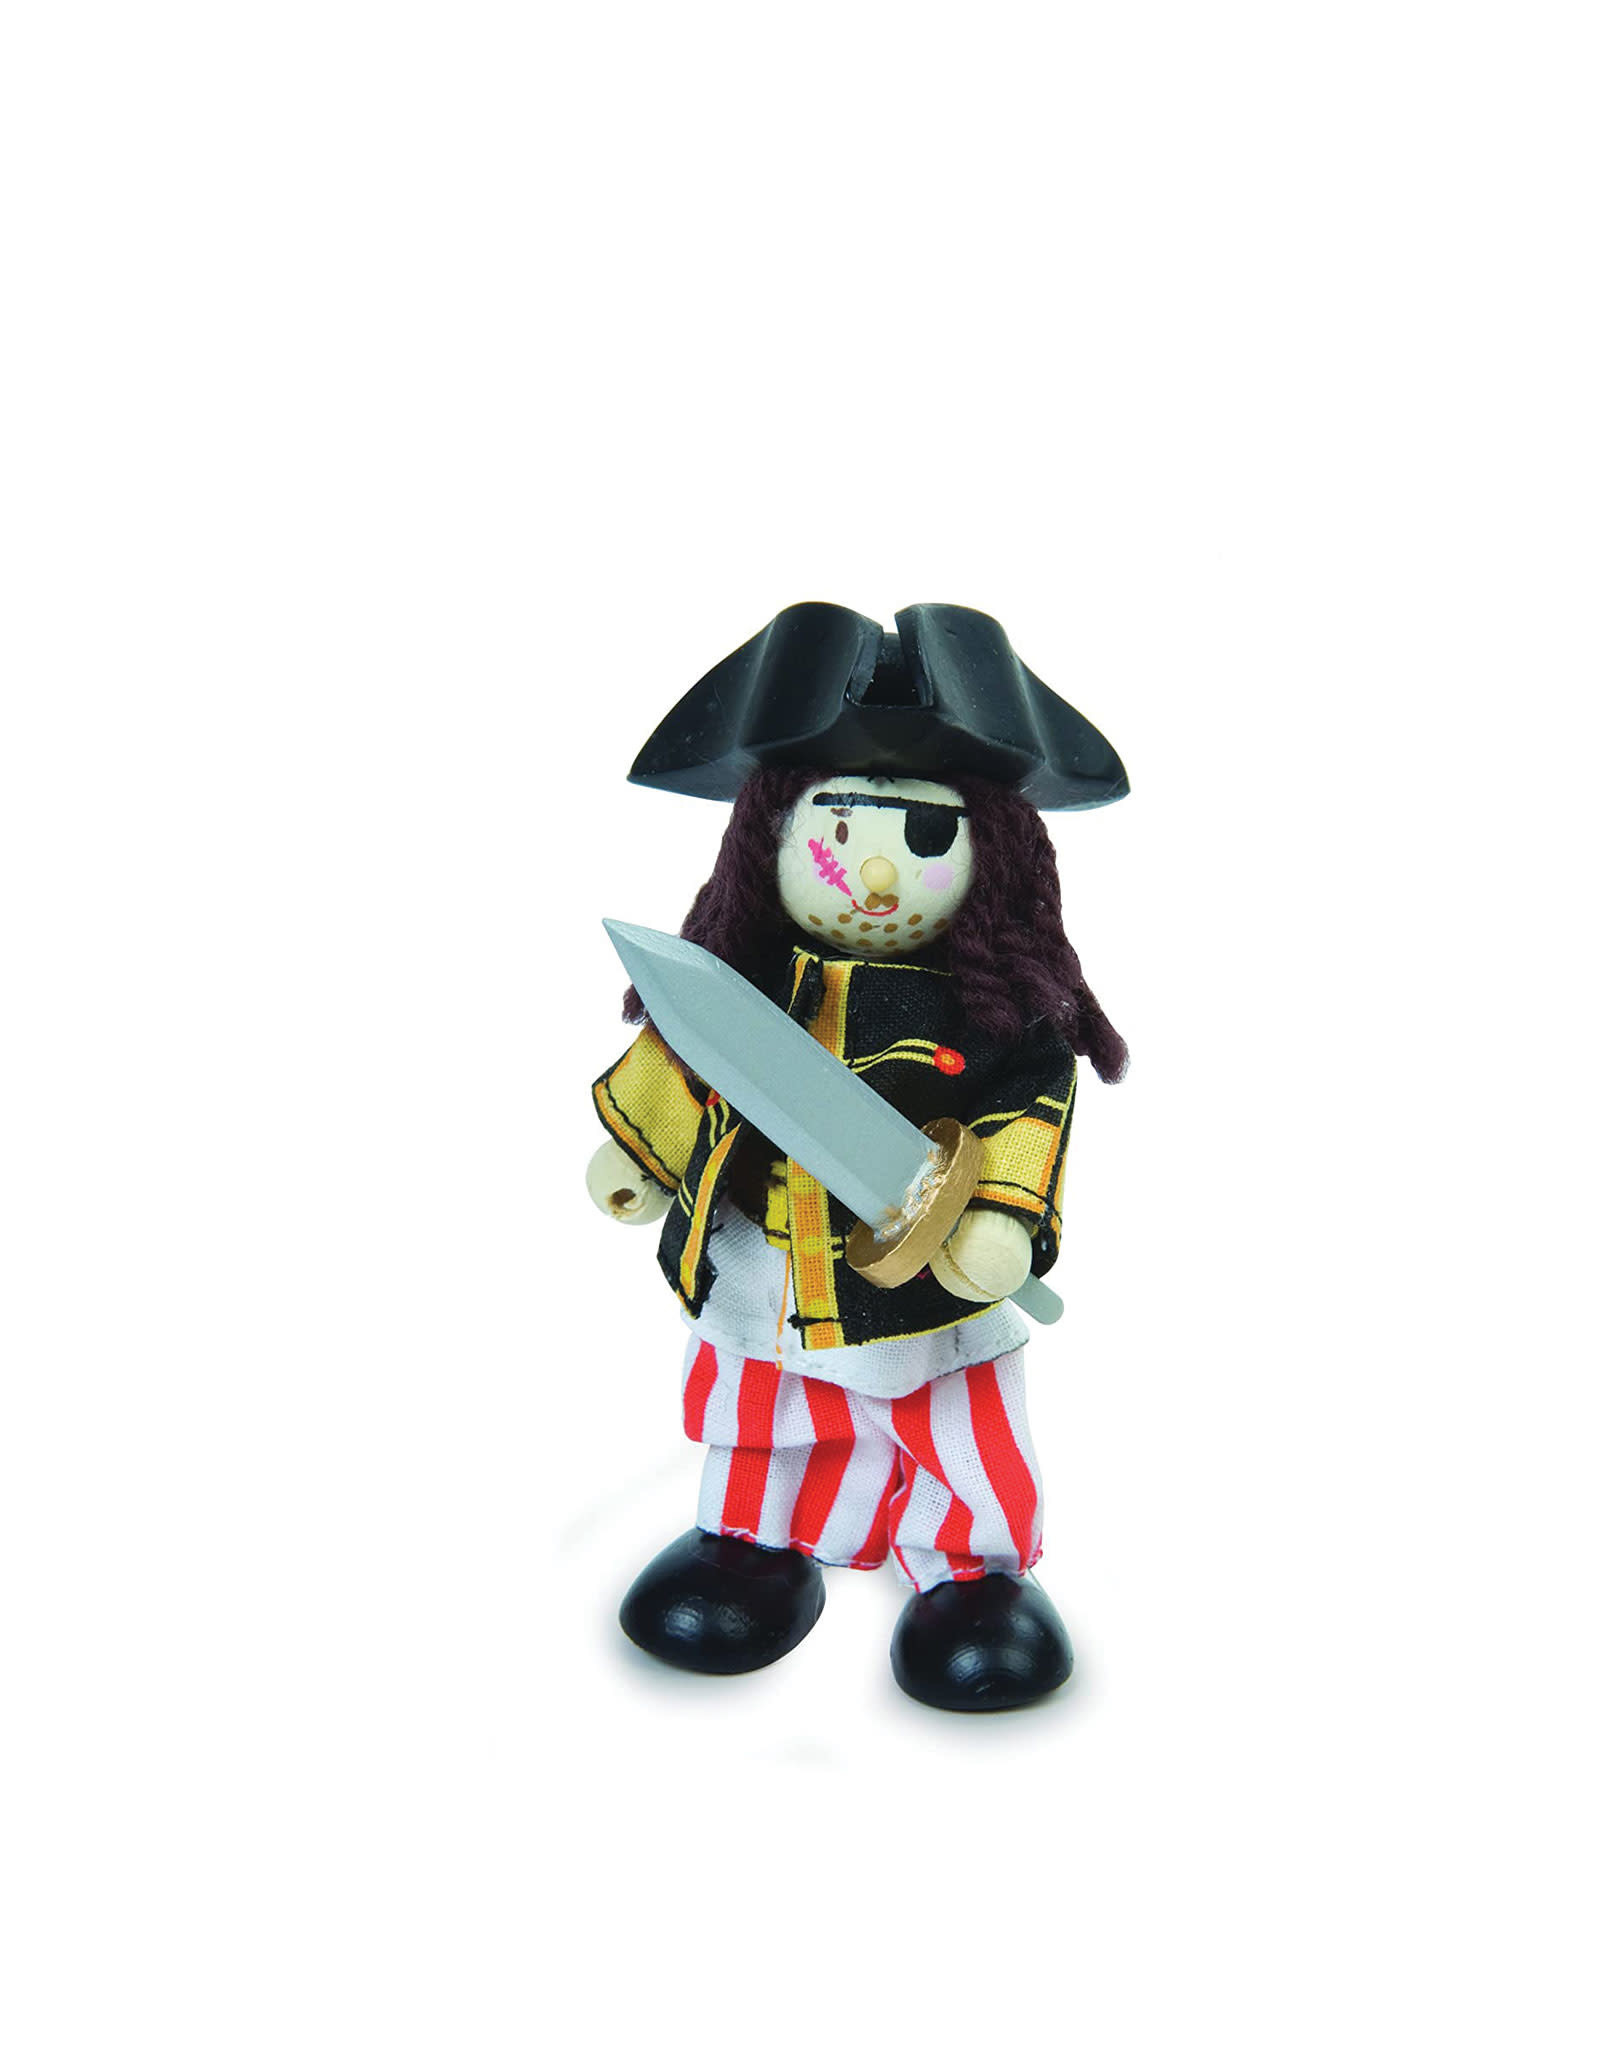 Le Toy Van Wooden Caracter - Pirate With An Eye Patch